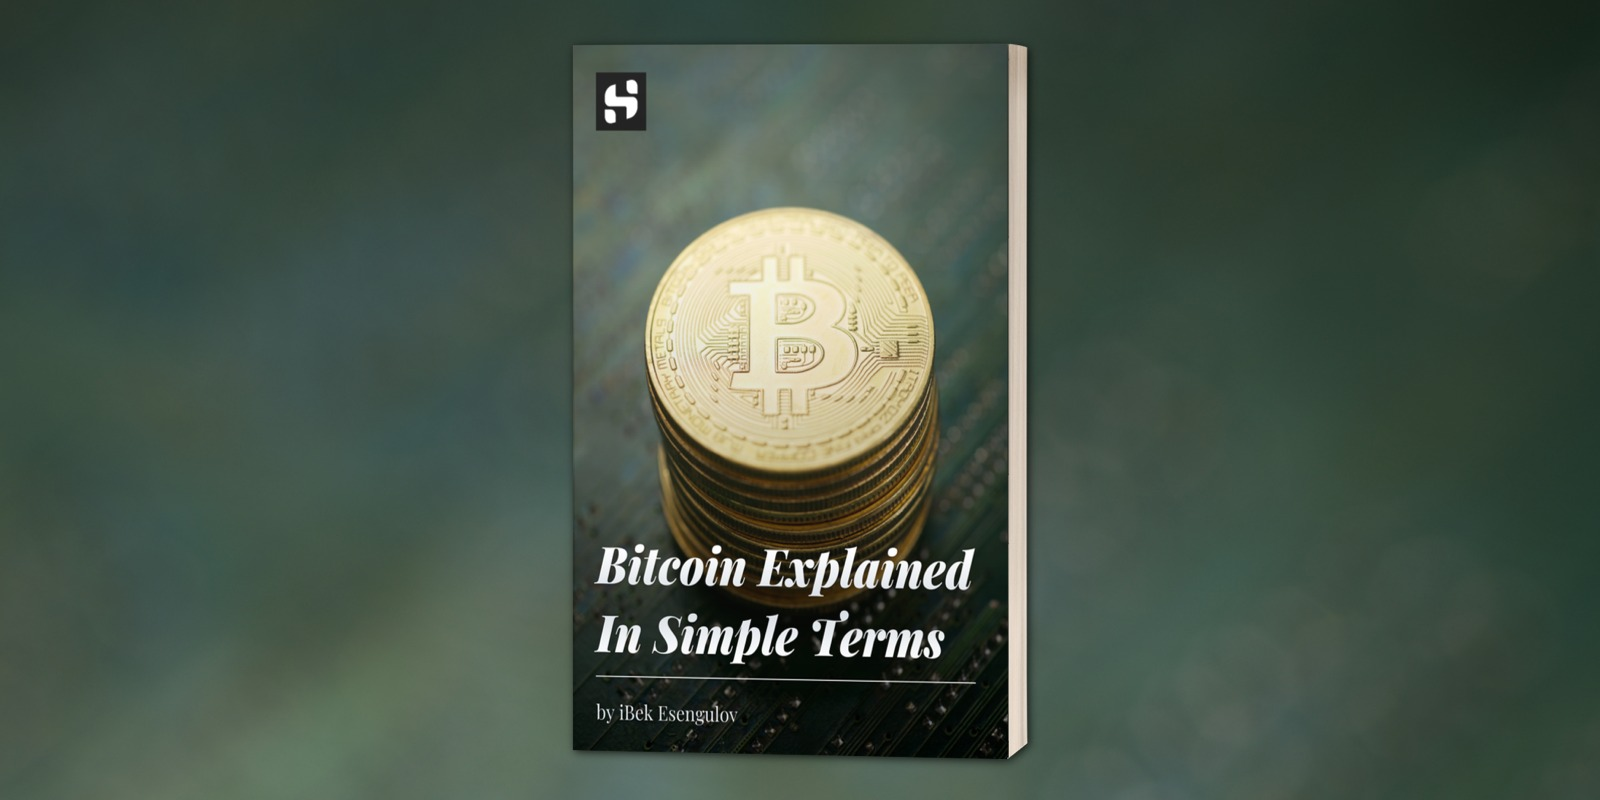 Bitcoin Explained in Simple Terms